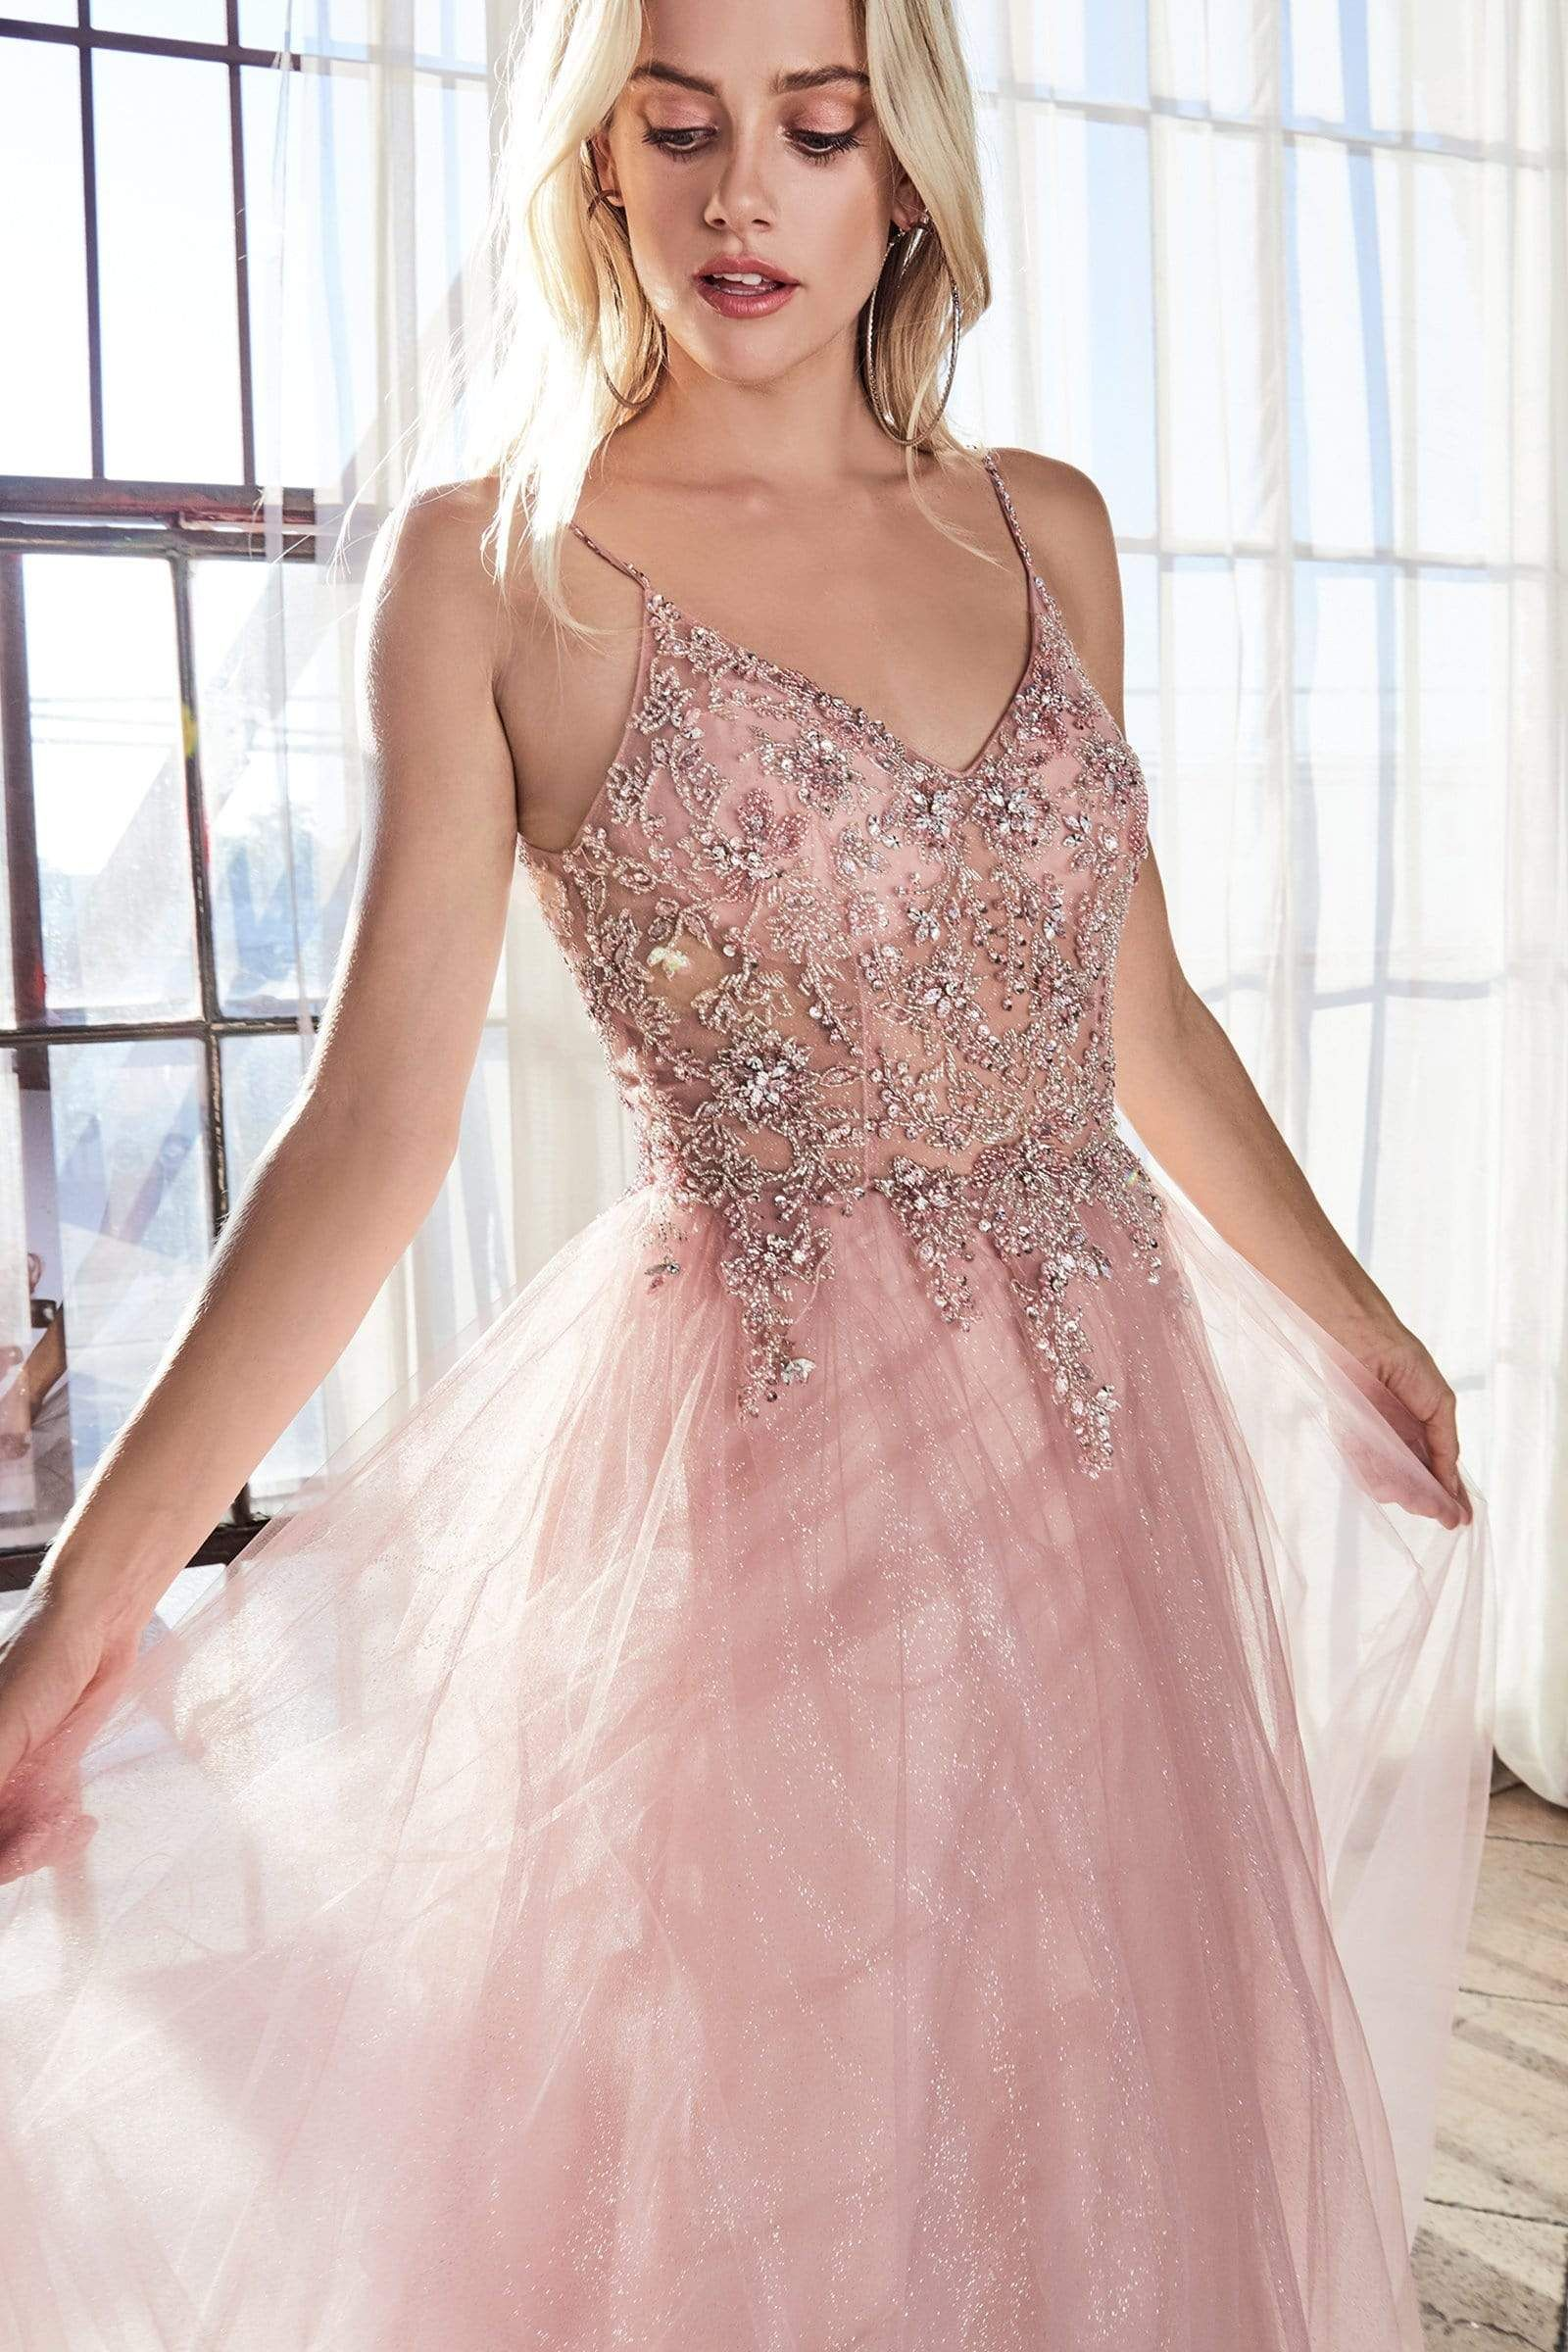 Cinderella Divine Am321 Beaded V Neck A Line Evening Gown In 2021 Blush Prom Dress Sparkle Tulle Skirt Stunning Prom Dresses [ 2400 x 1600 Pixel ]